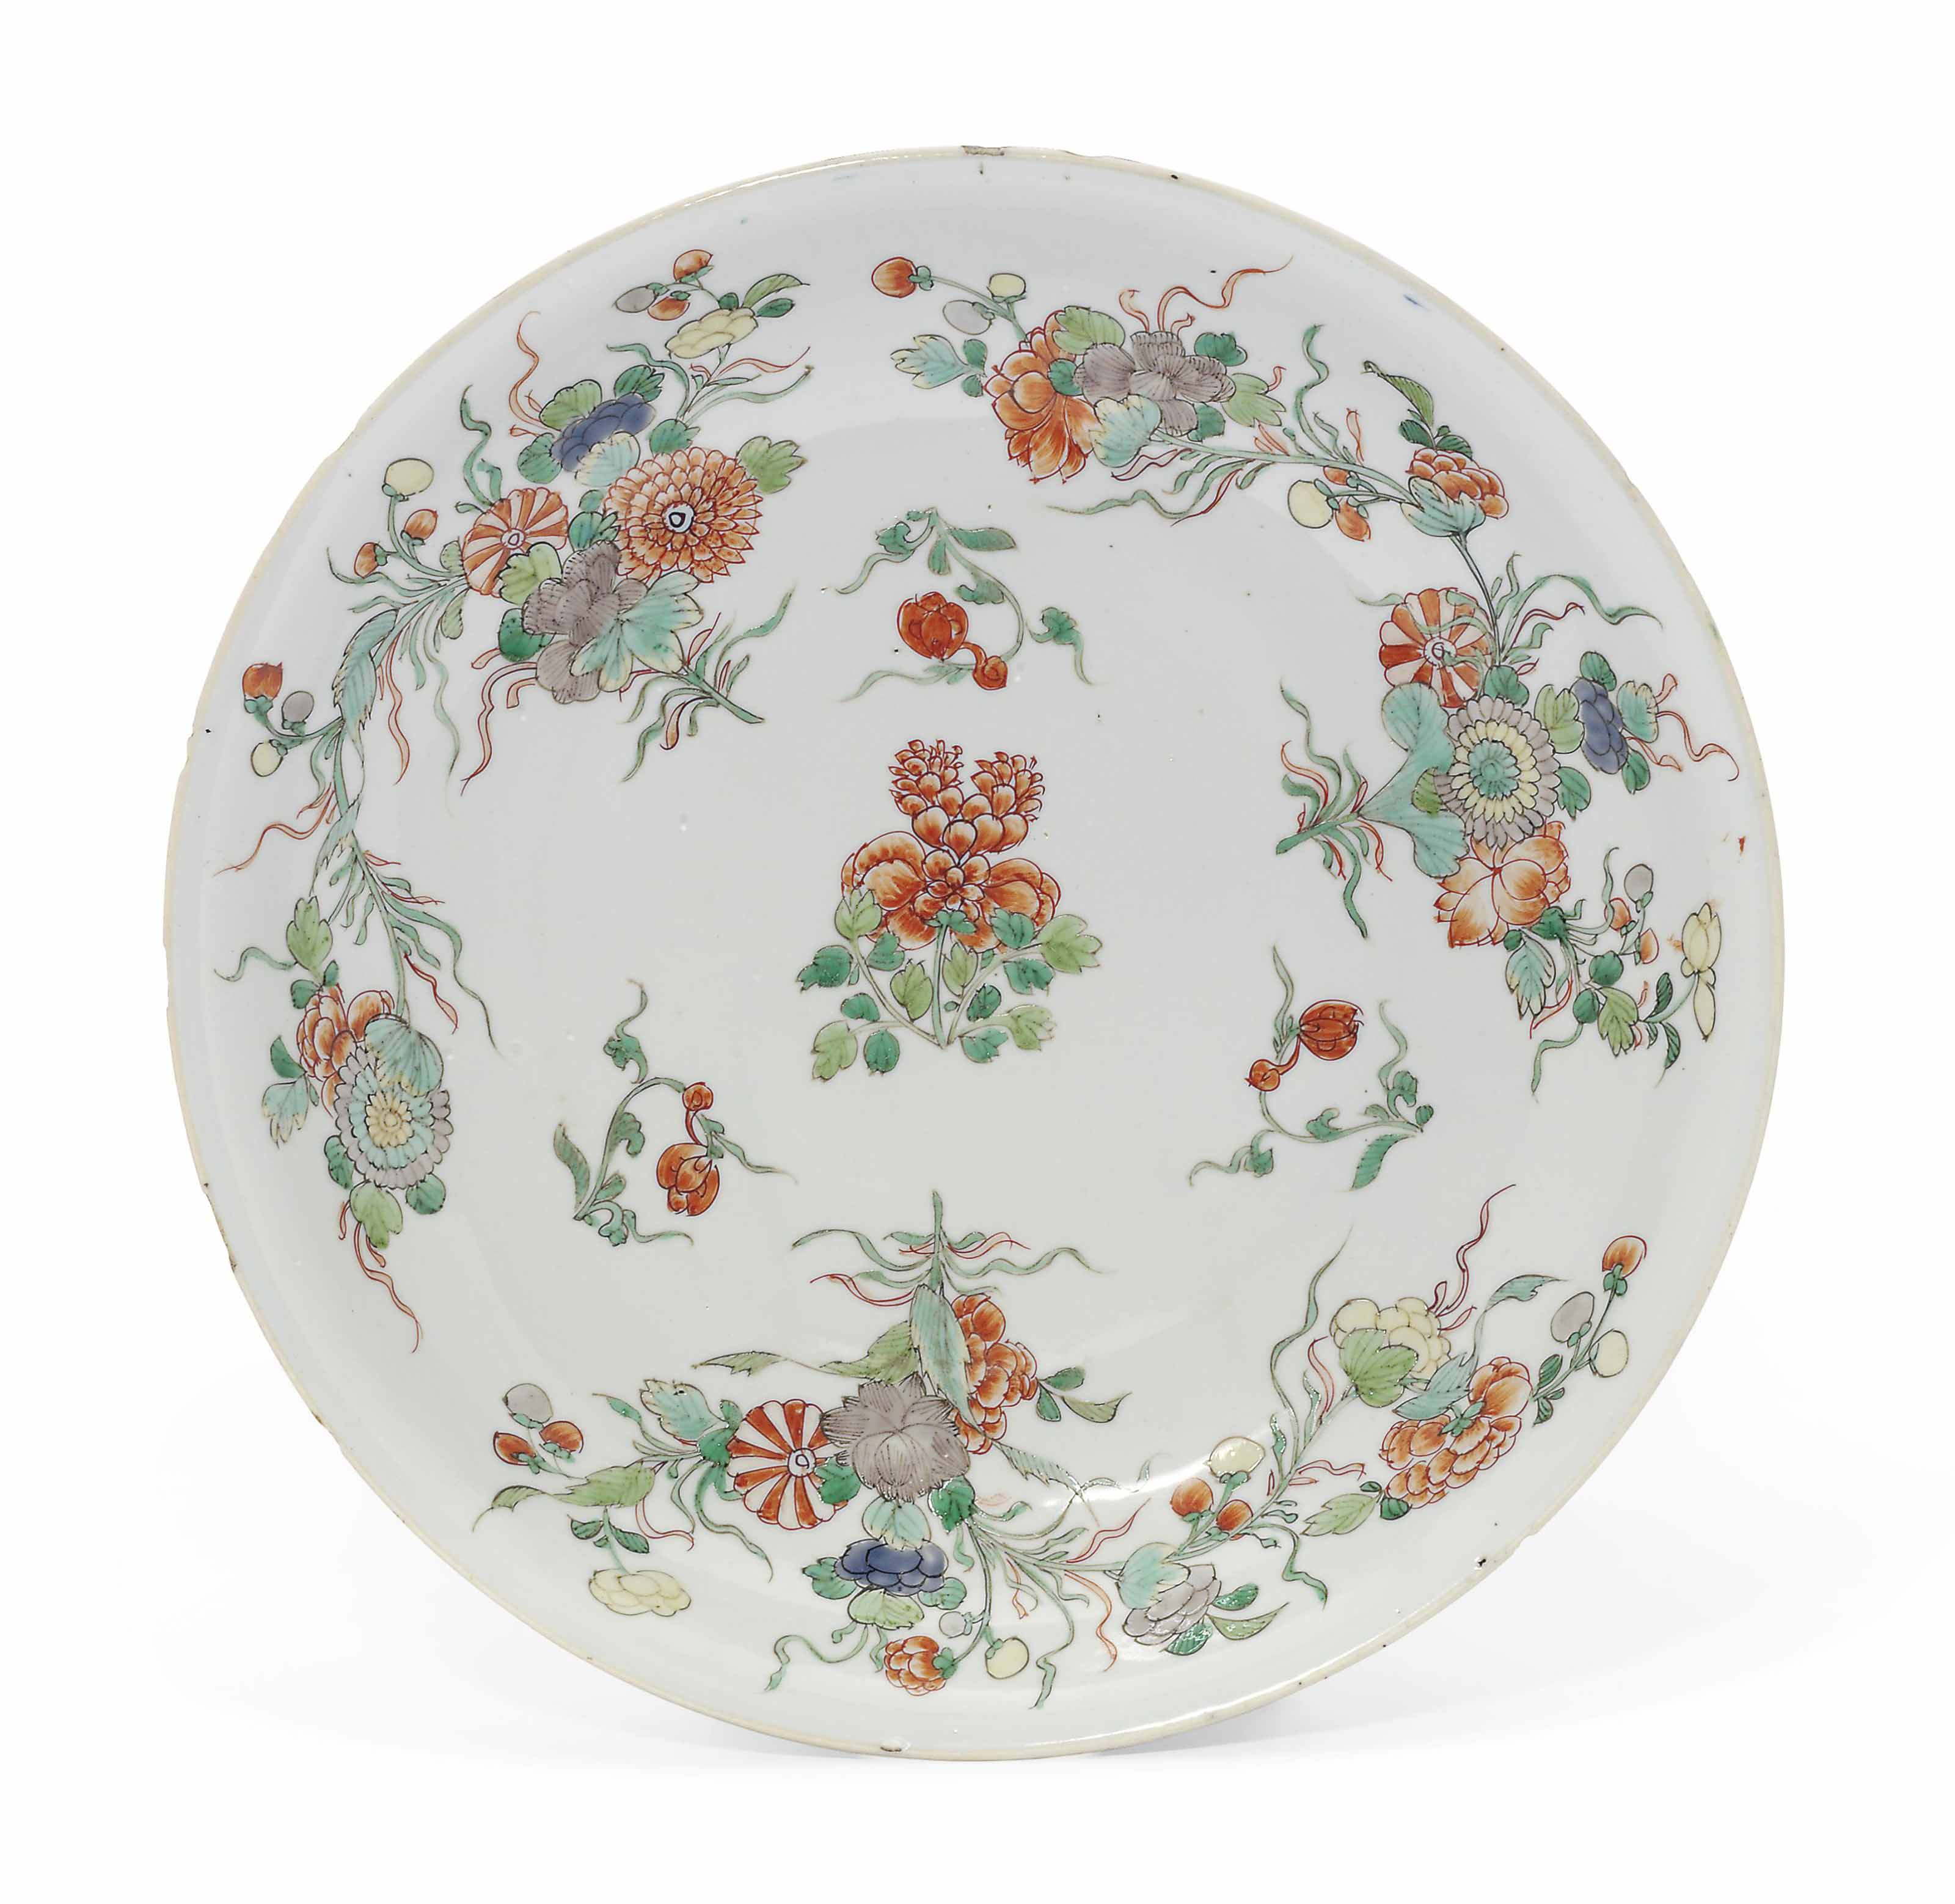 A LARGE CHINESE FAMILLE VERTE DISH